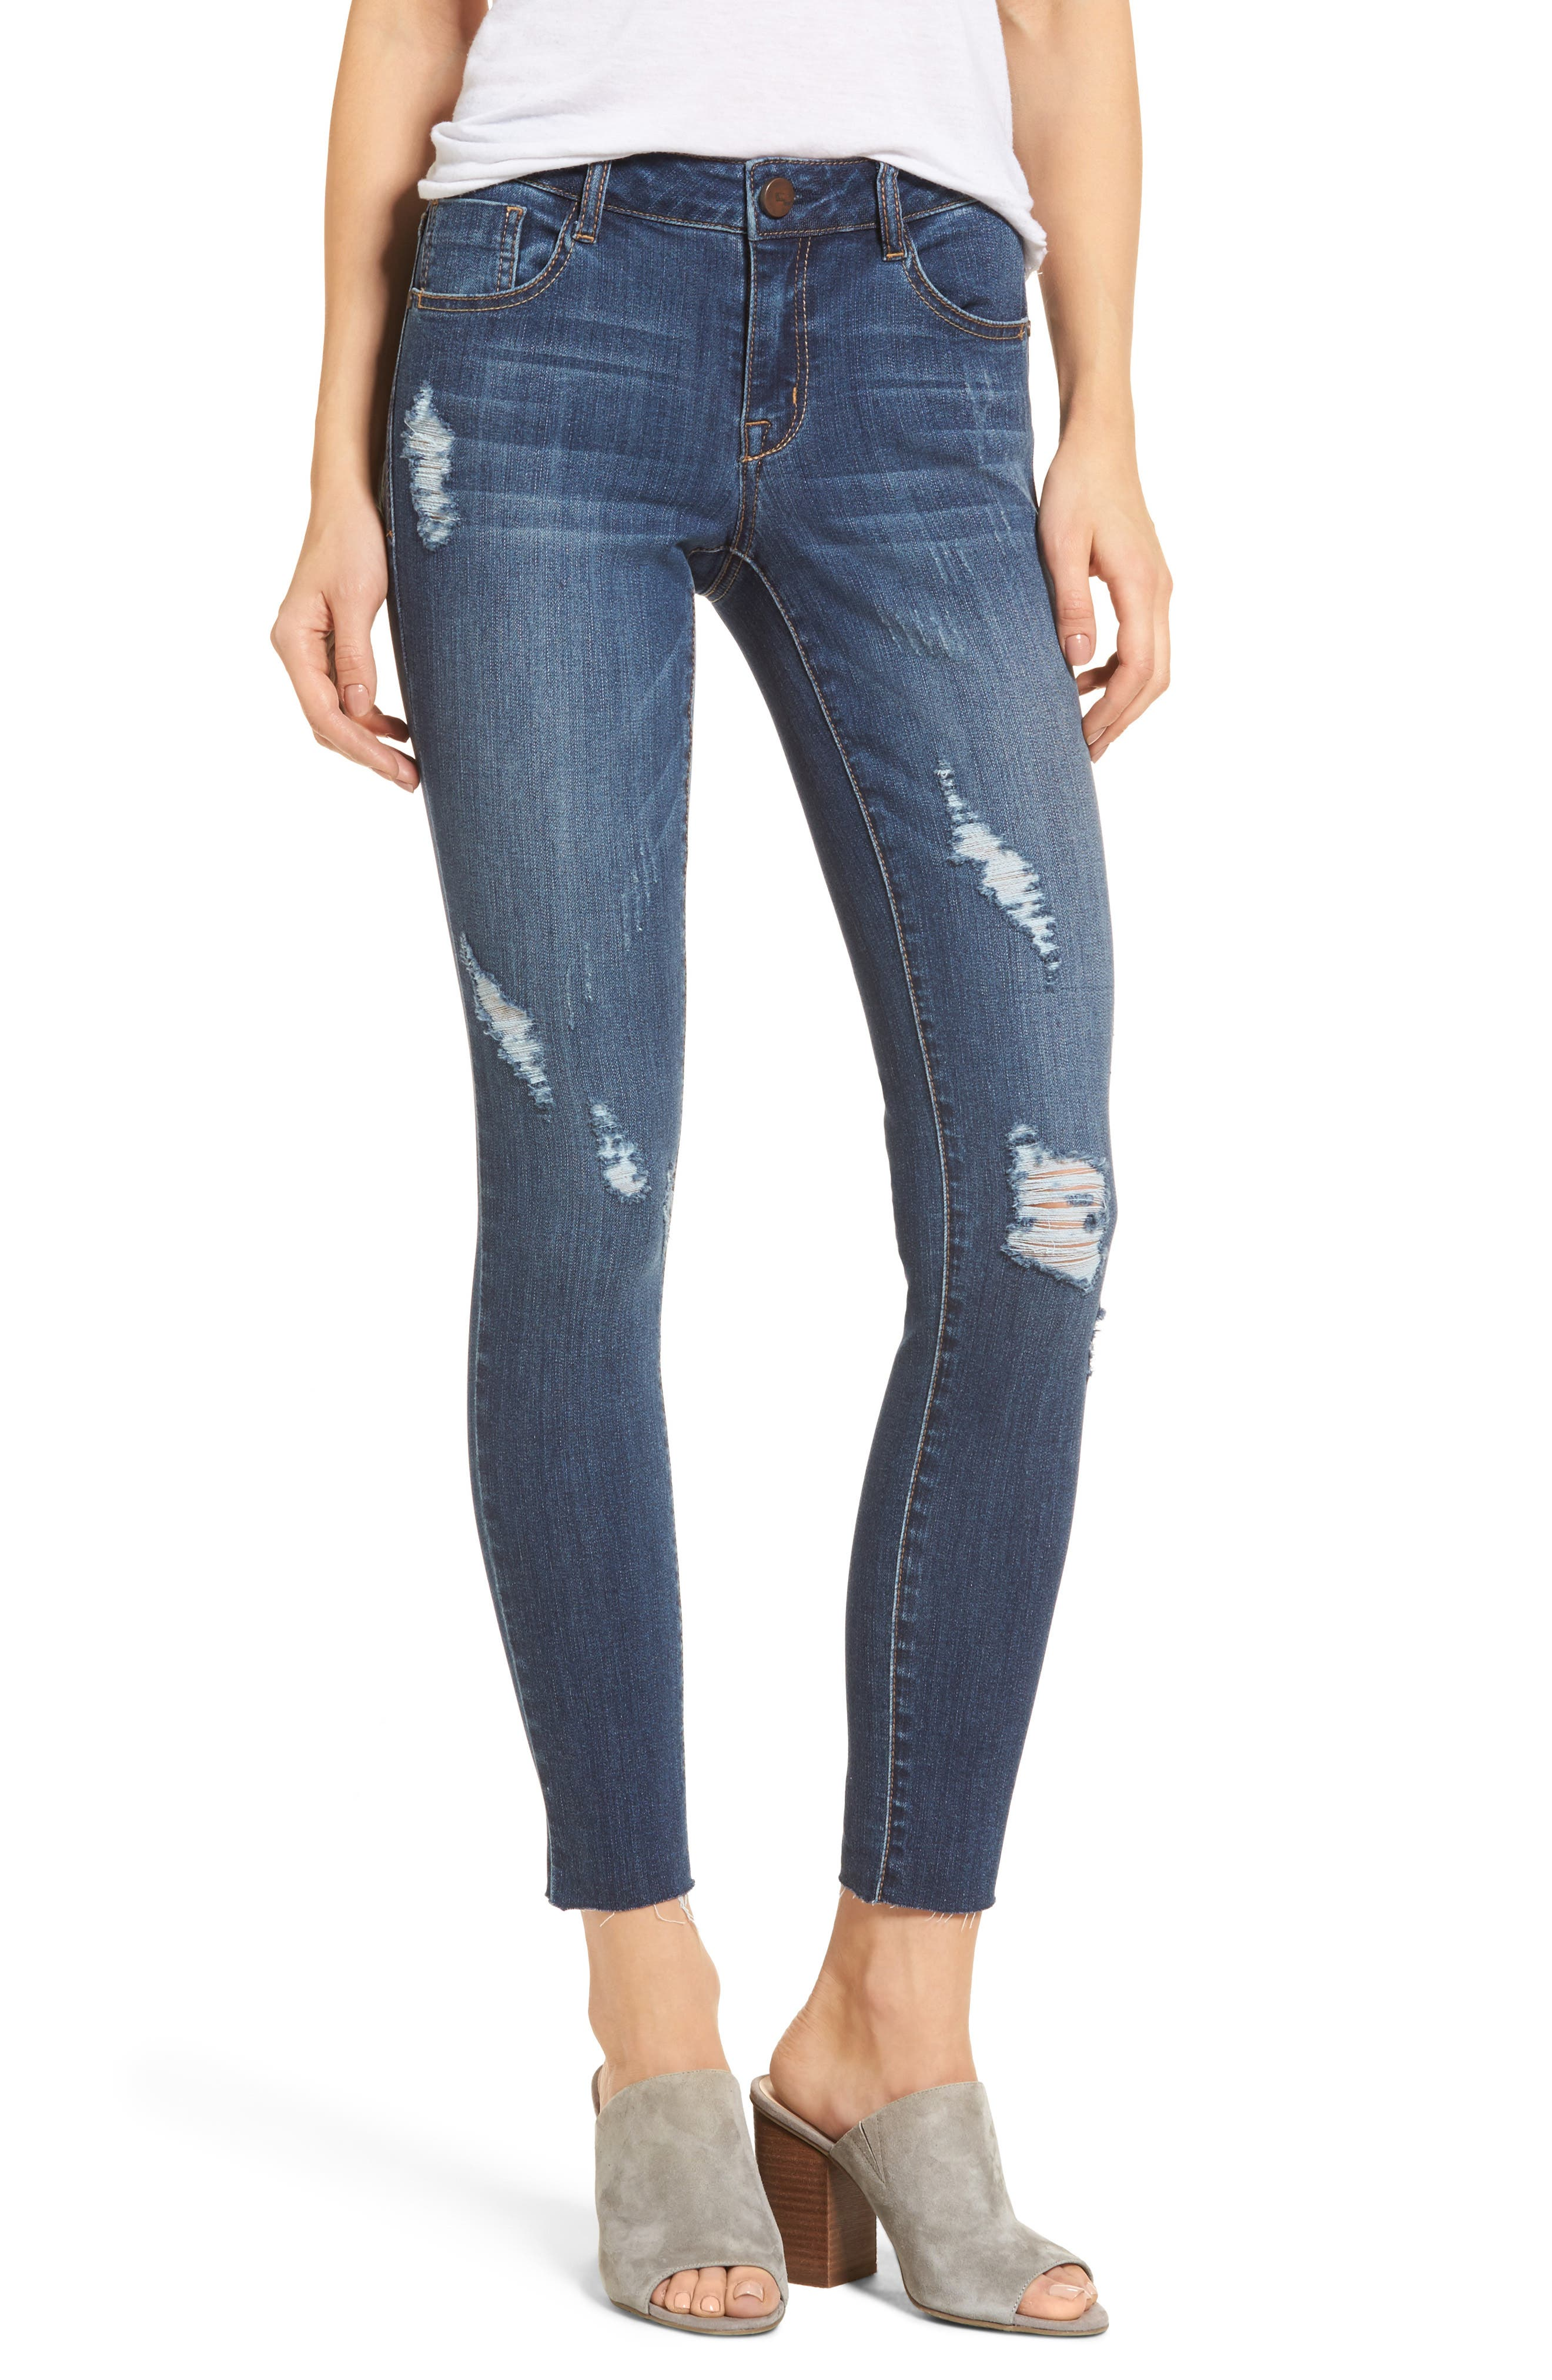 Decon Distressed Skinny Jeans,                             Main thumbnail 1, color,                             Wall Flowers Med Wash